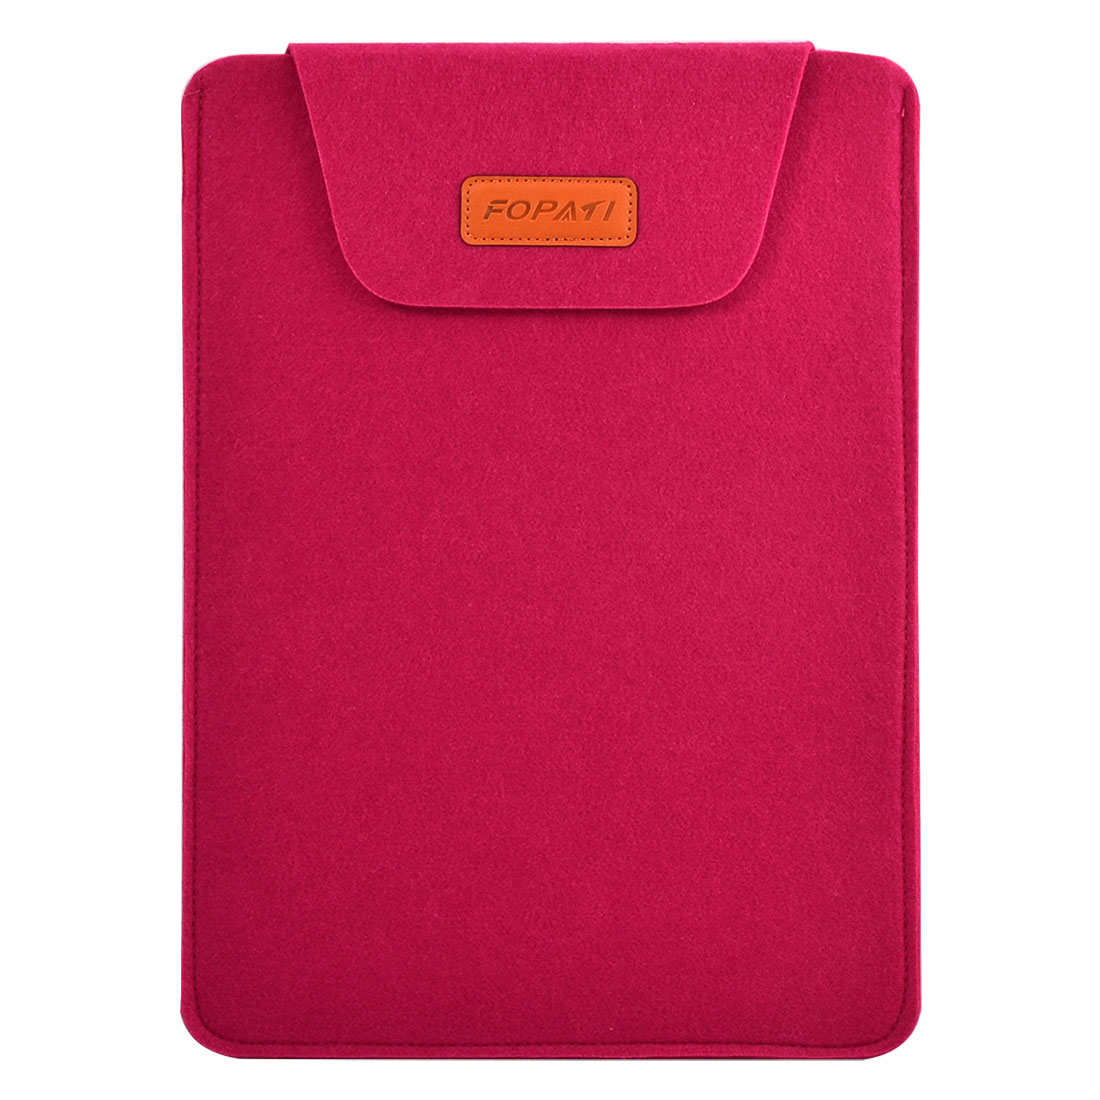 Office Computer Wool Felt Universal Protective Bag Notebook Sleeve Case Fuchsia for 14 Inch Laptop